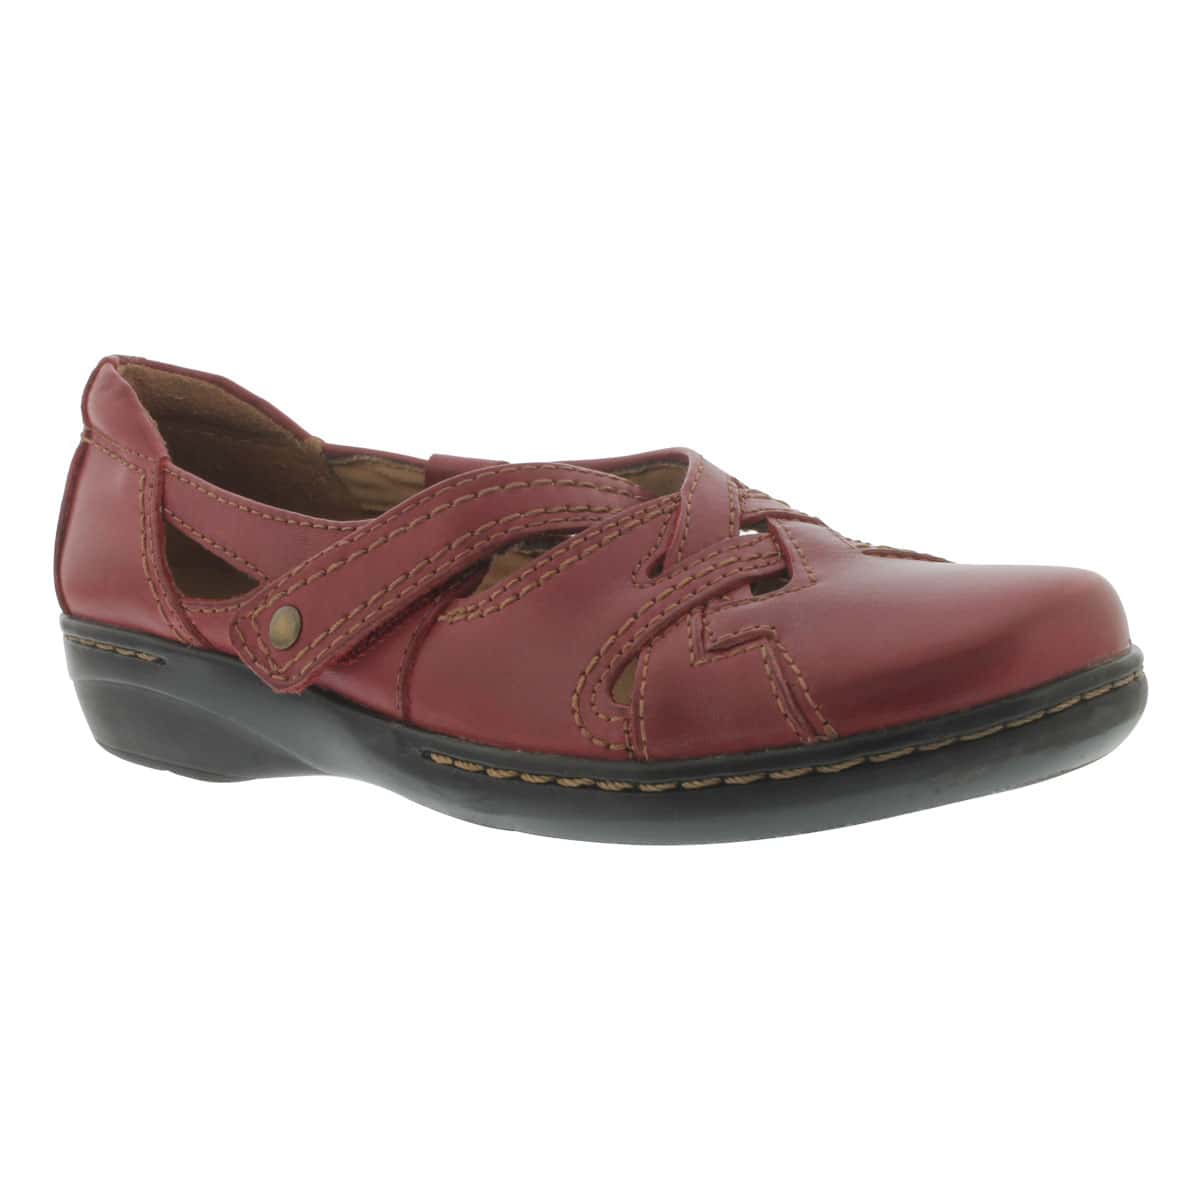 Lds Evianna Peal red slip on shoe